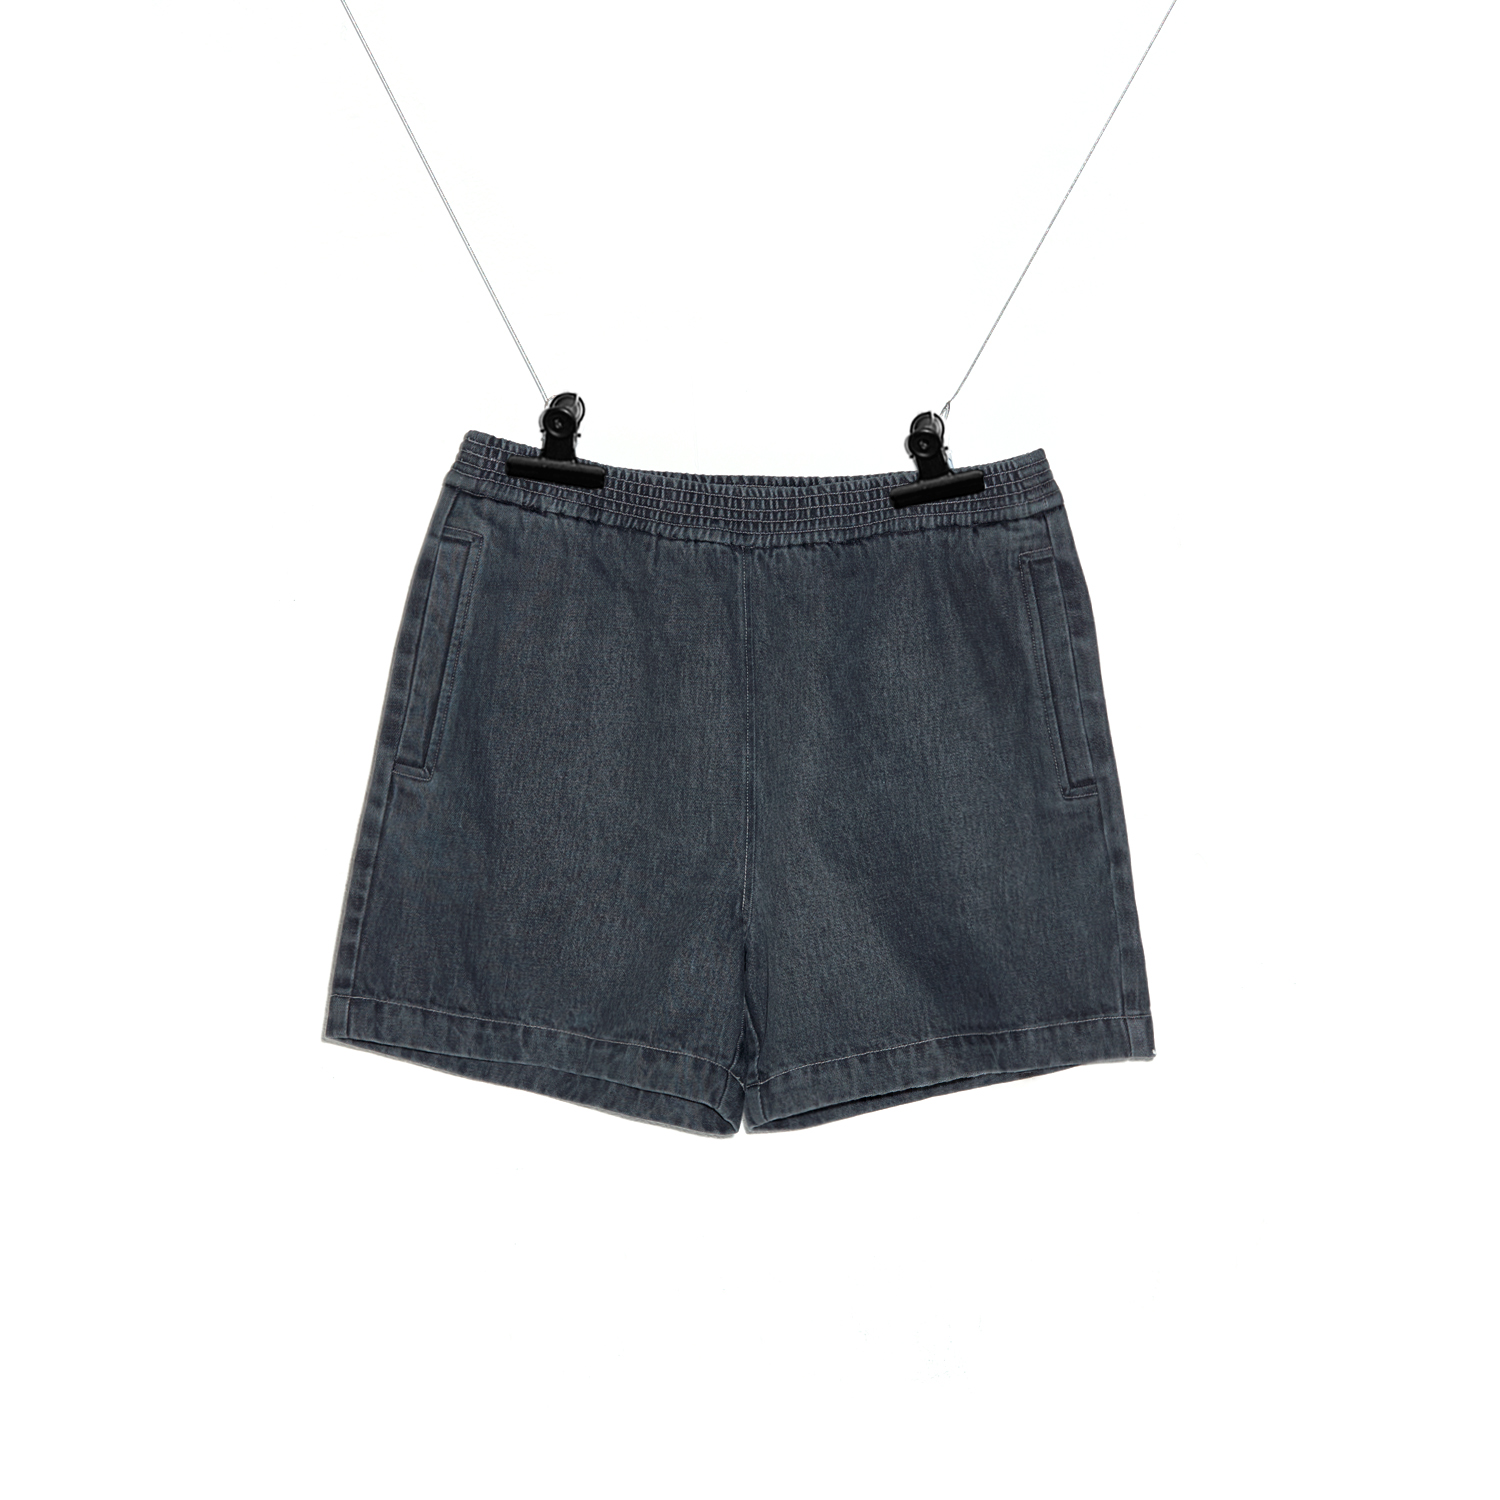 PMO DENIM SHORTS #1 BLACK